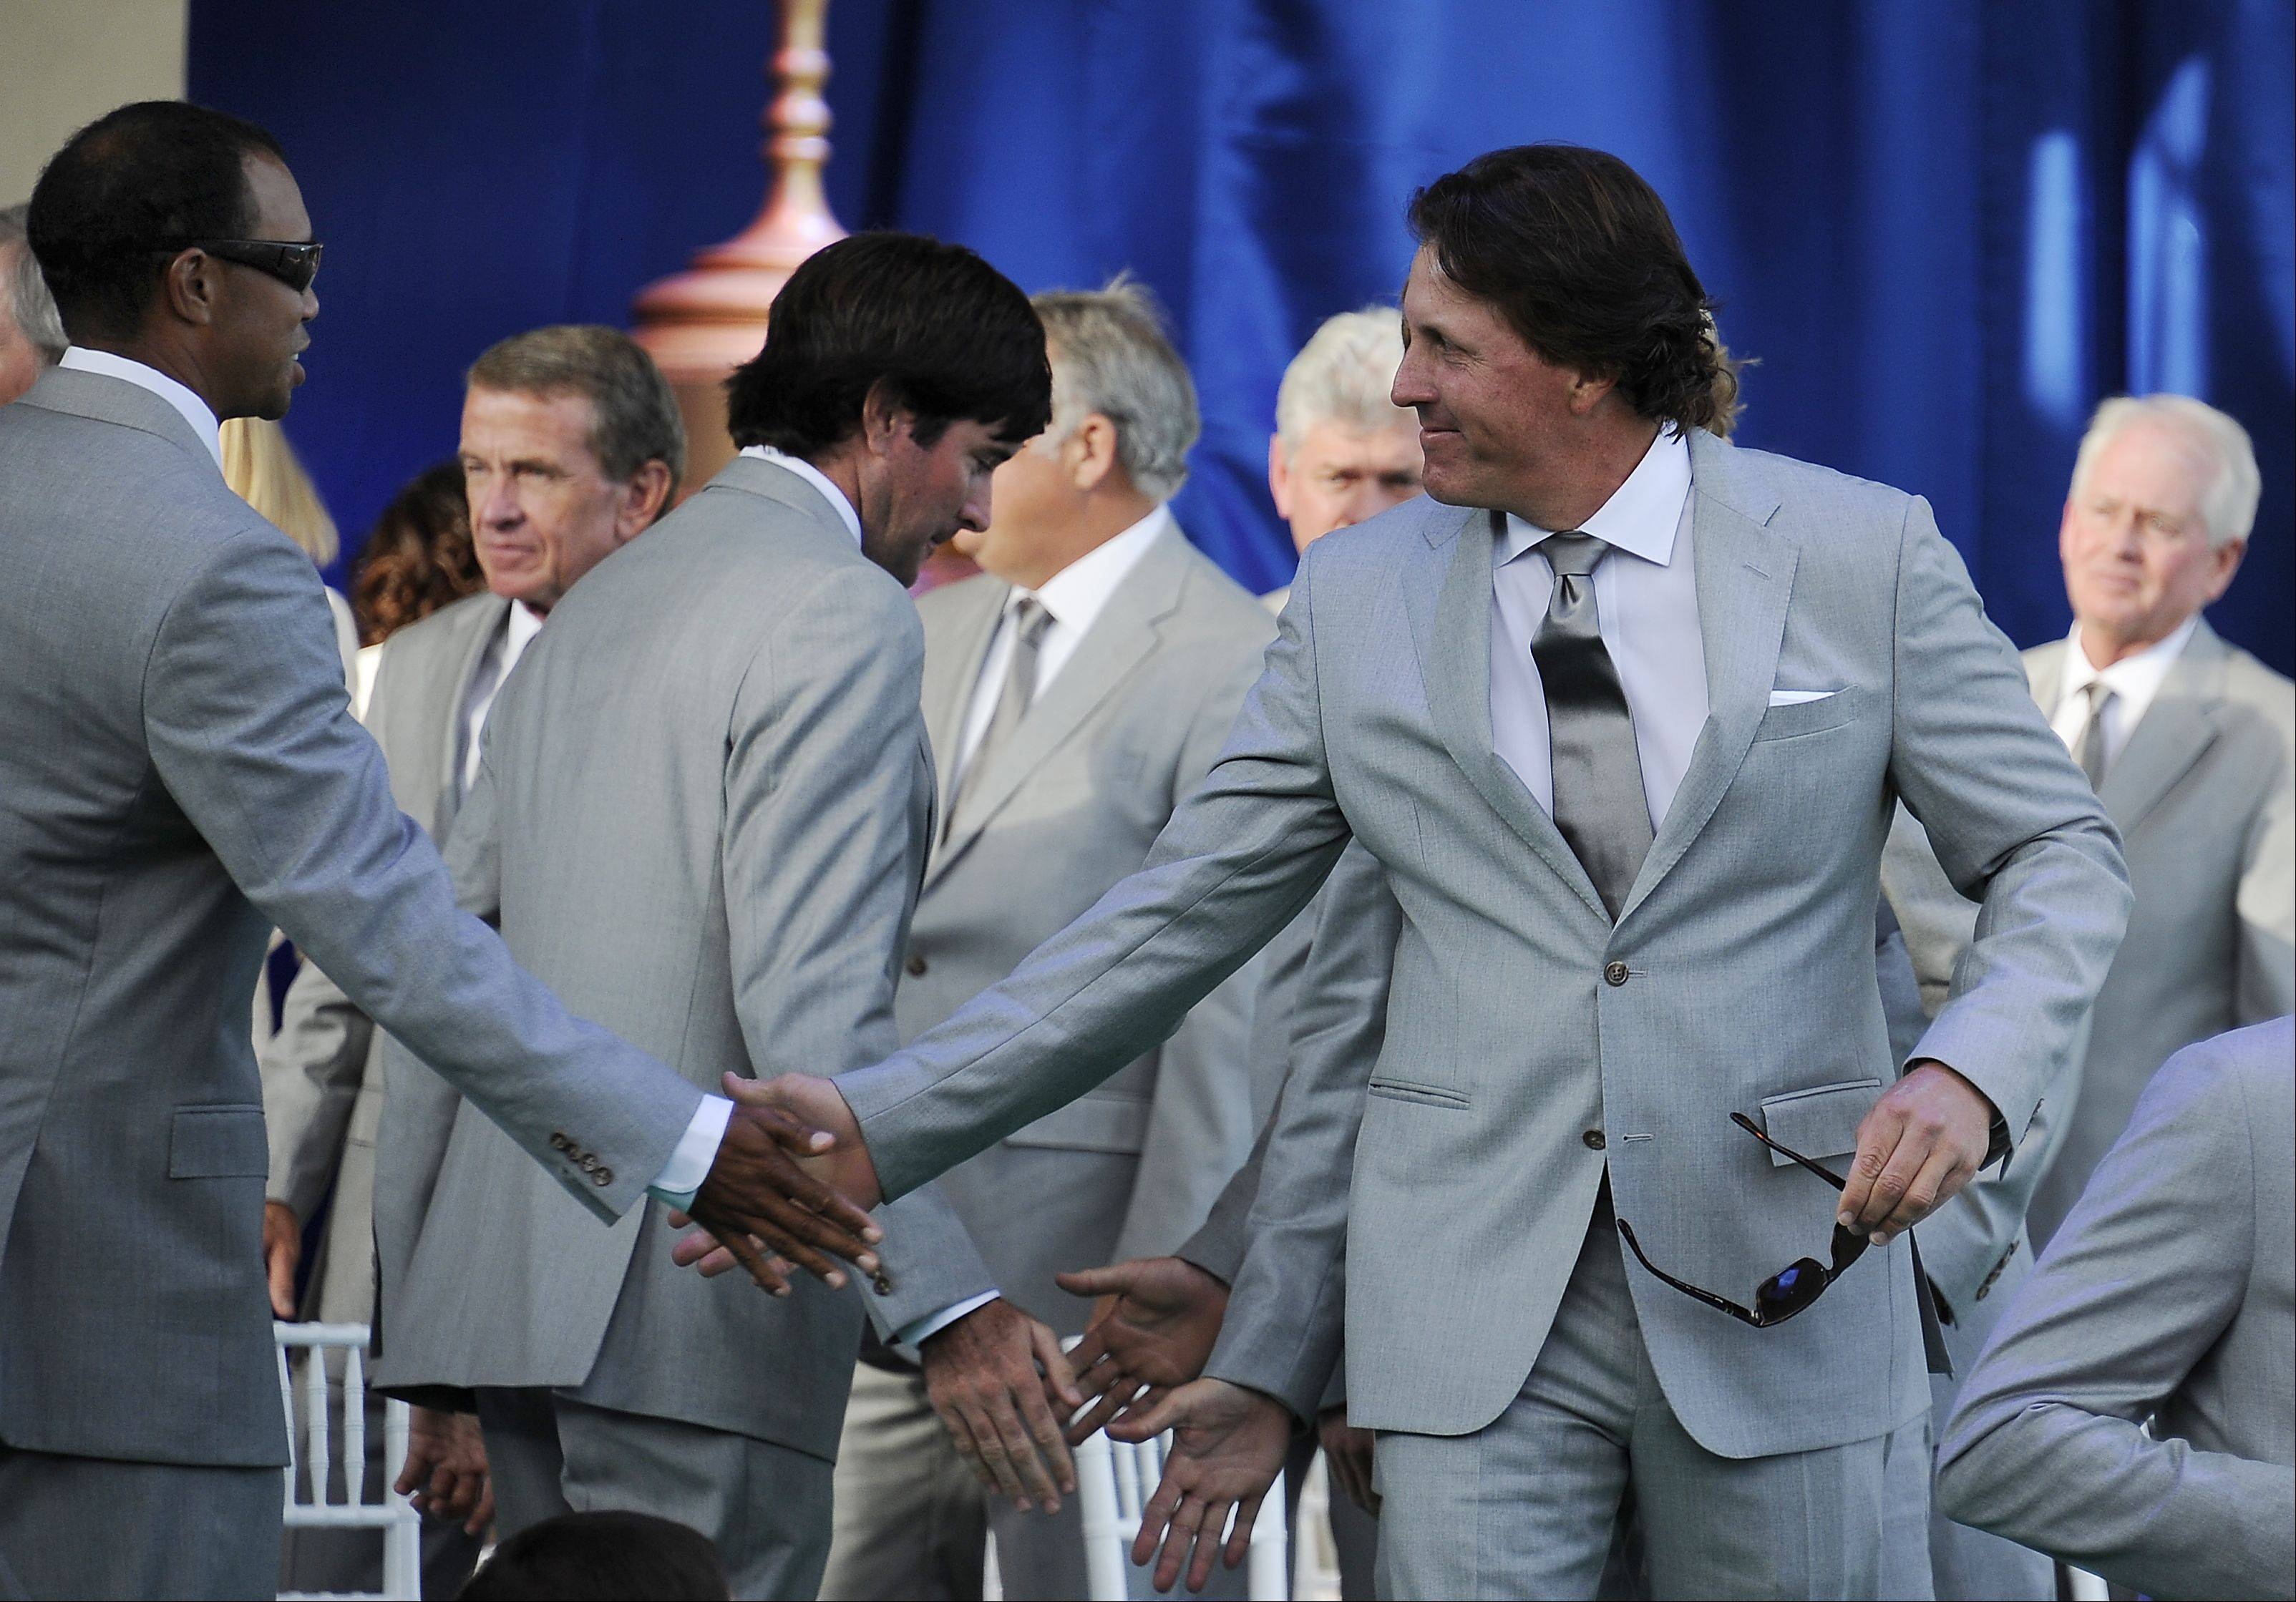 United States team member Phil Mickelson shakes hands with teammate Tiger Woods.